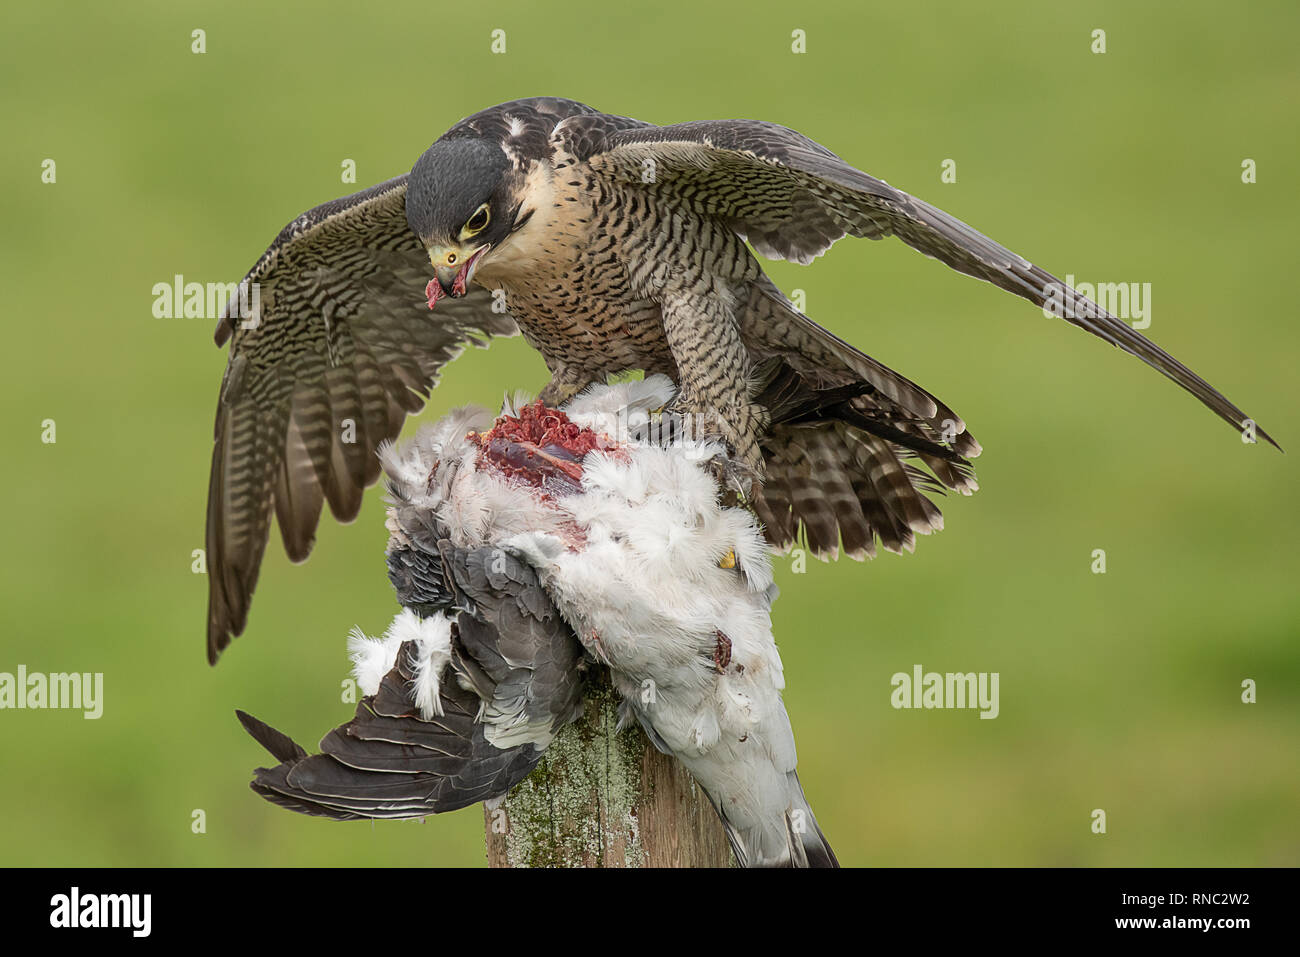 A peregrine falcon forms a mantle over as it feeds on its prey of a pigeon - Stock Image